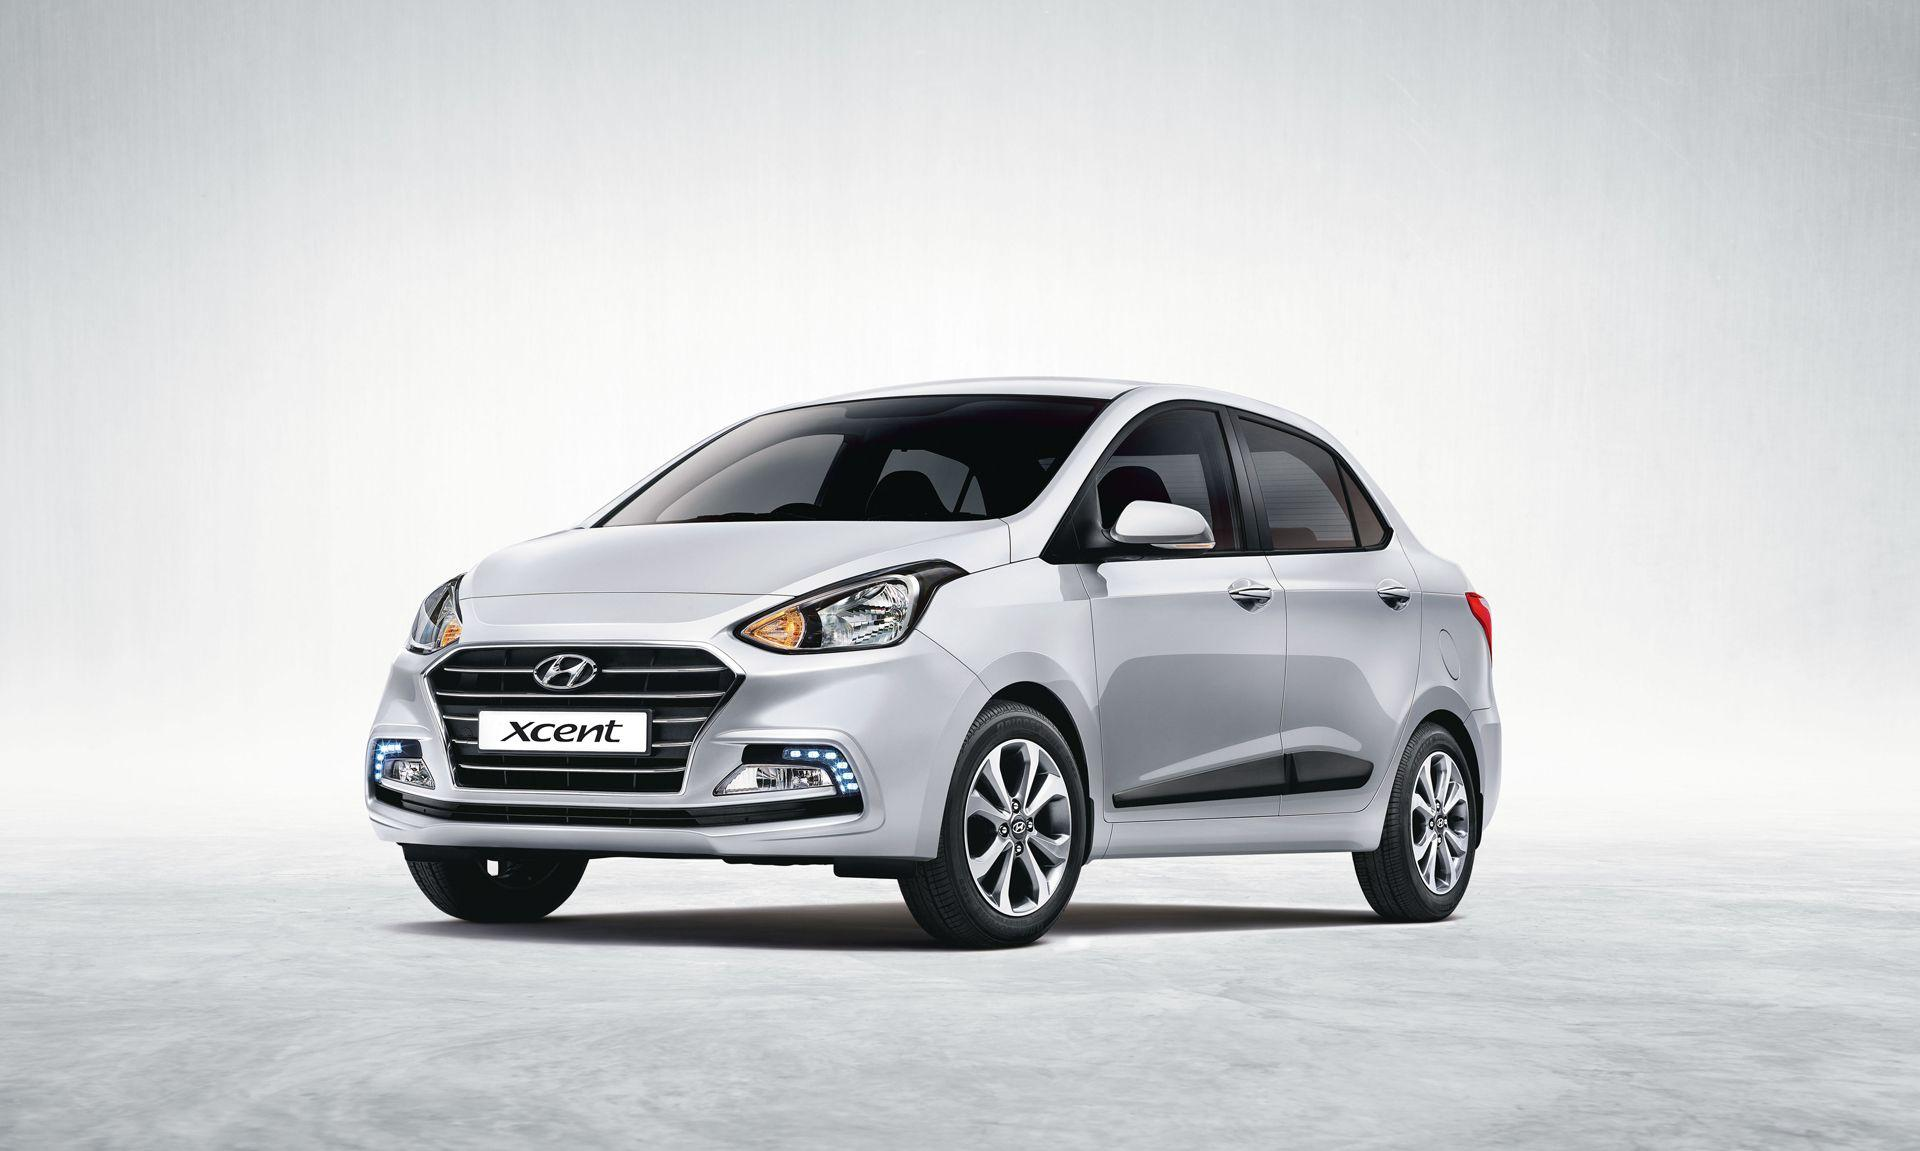 HYUNDAI XCENT 2017 E Photos, Image and Wallpapers, Colours